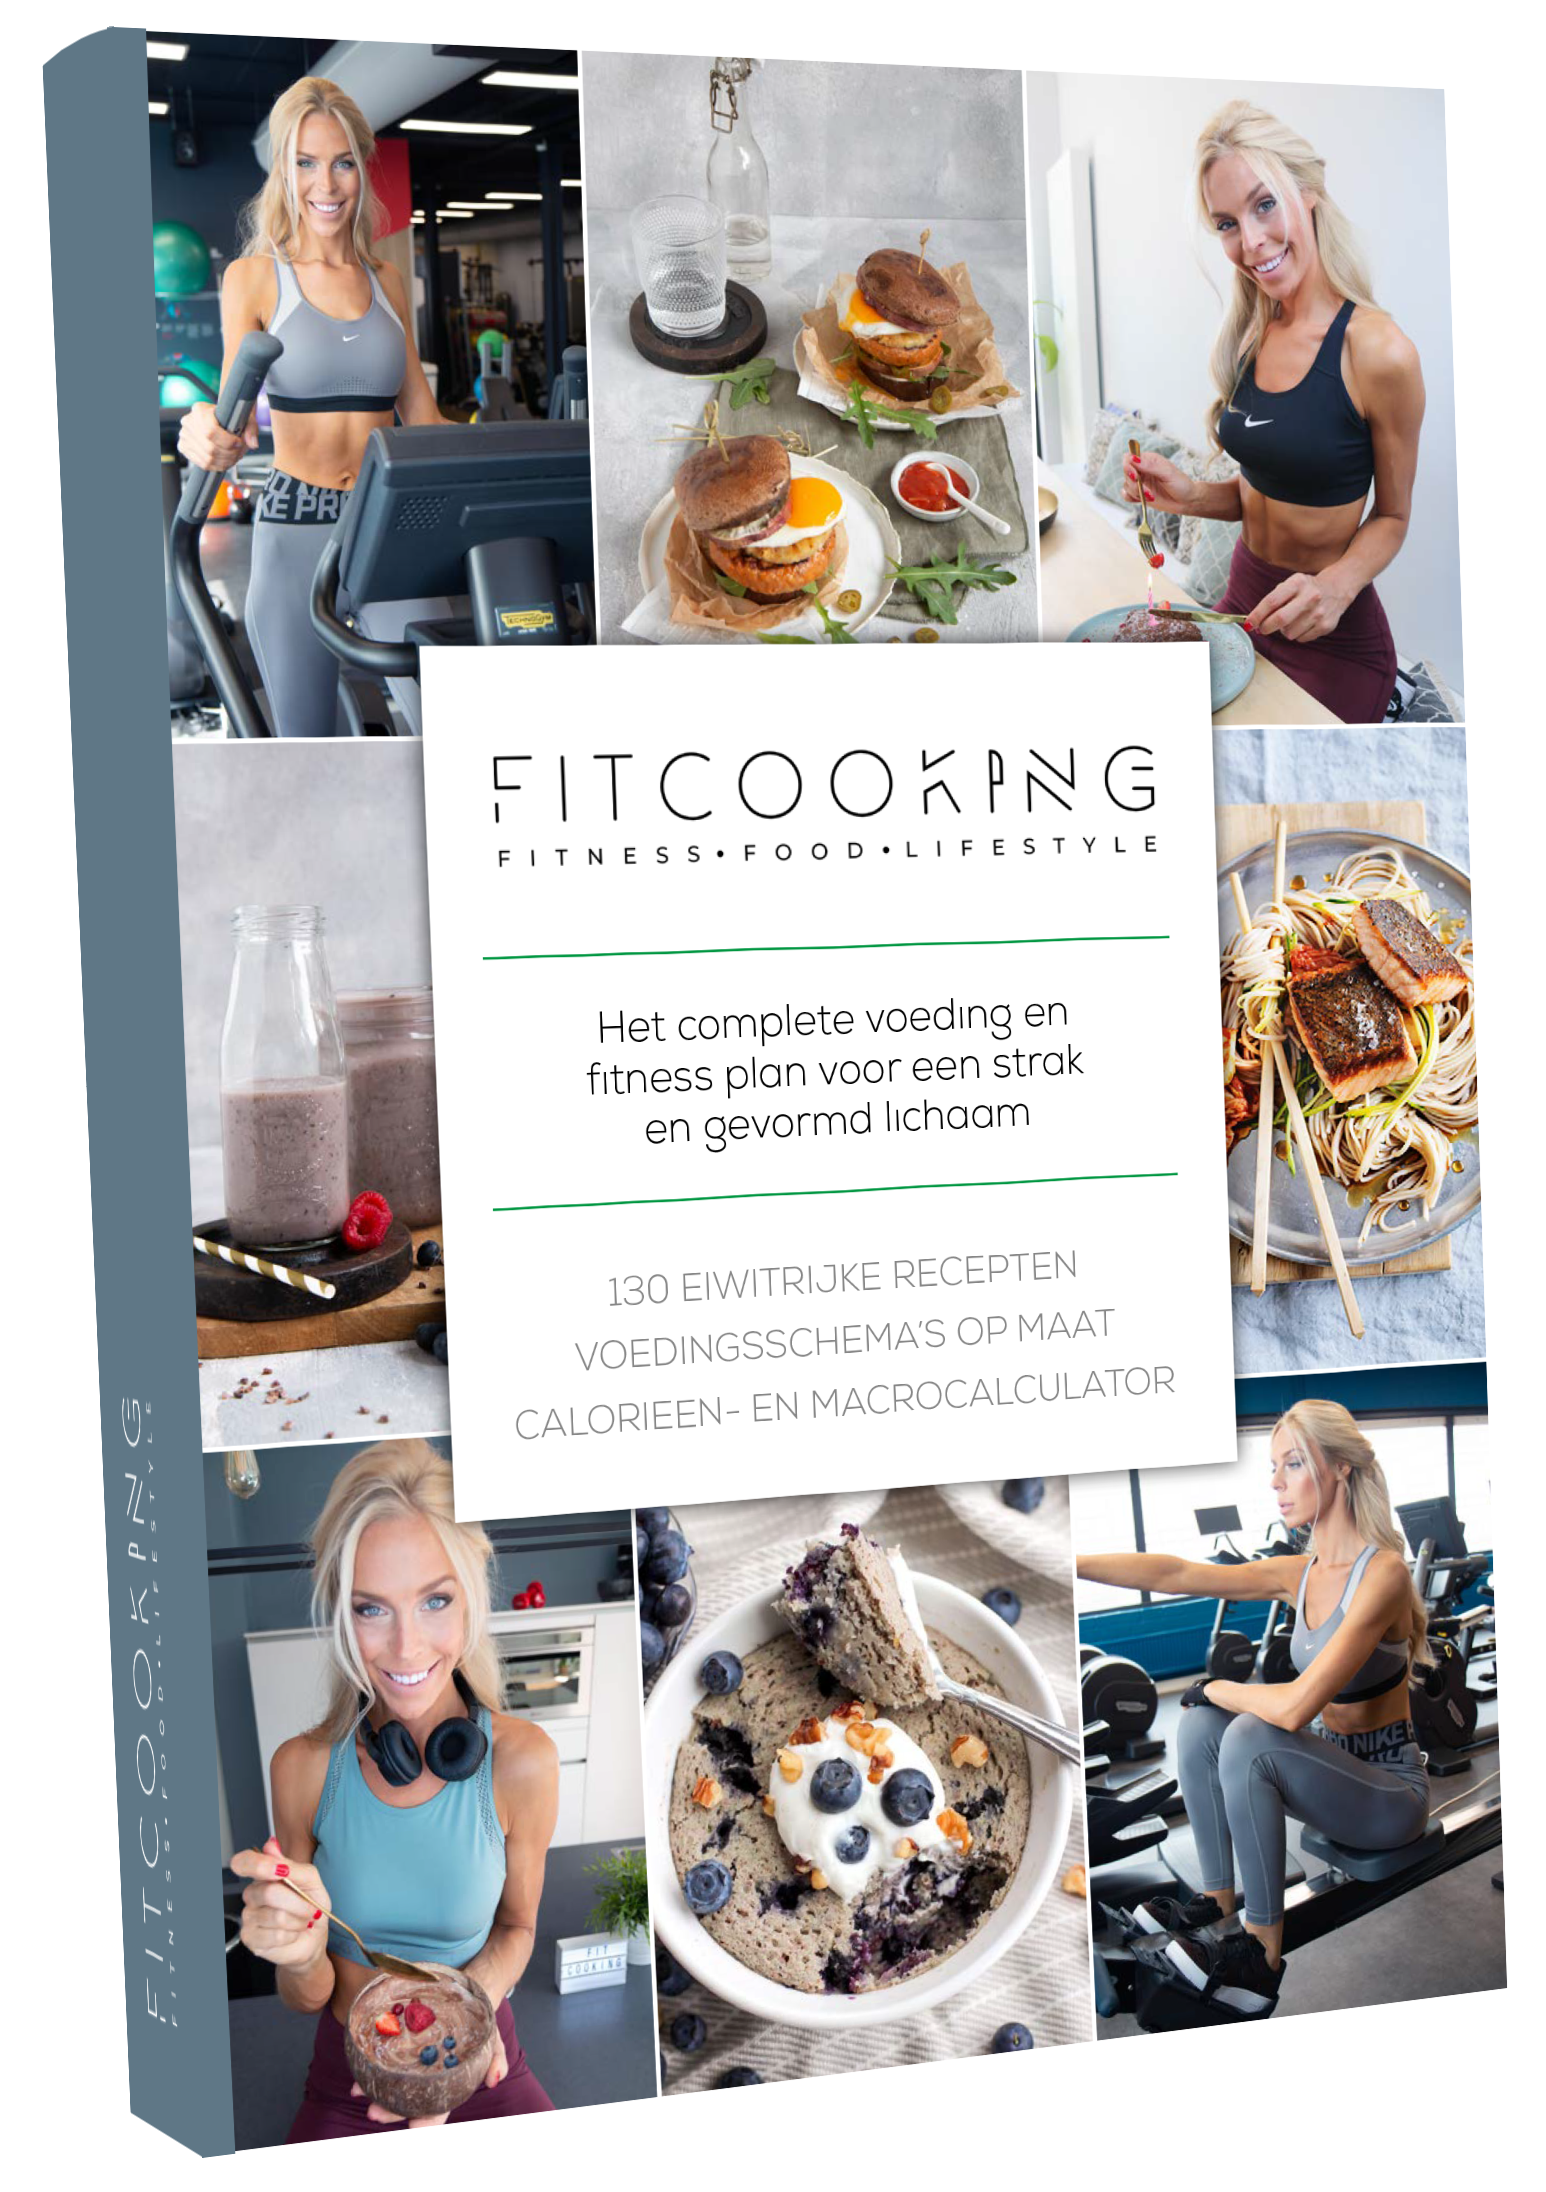 Fitcooking editie 2 (2019)